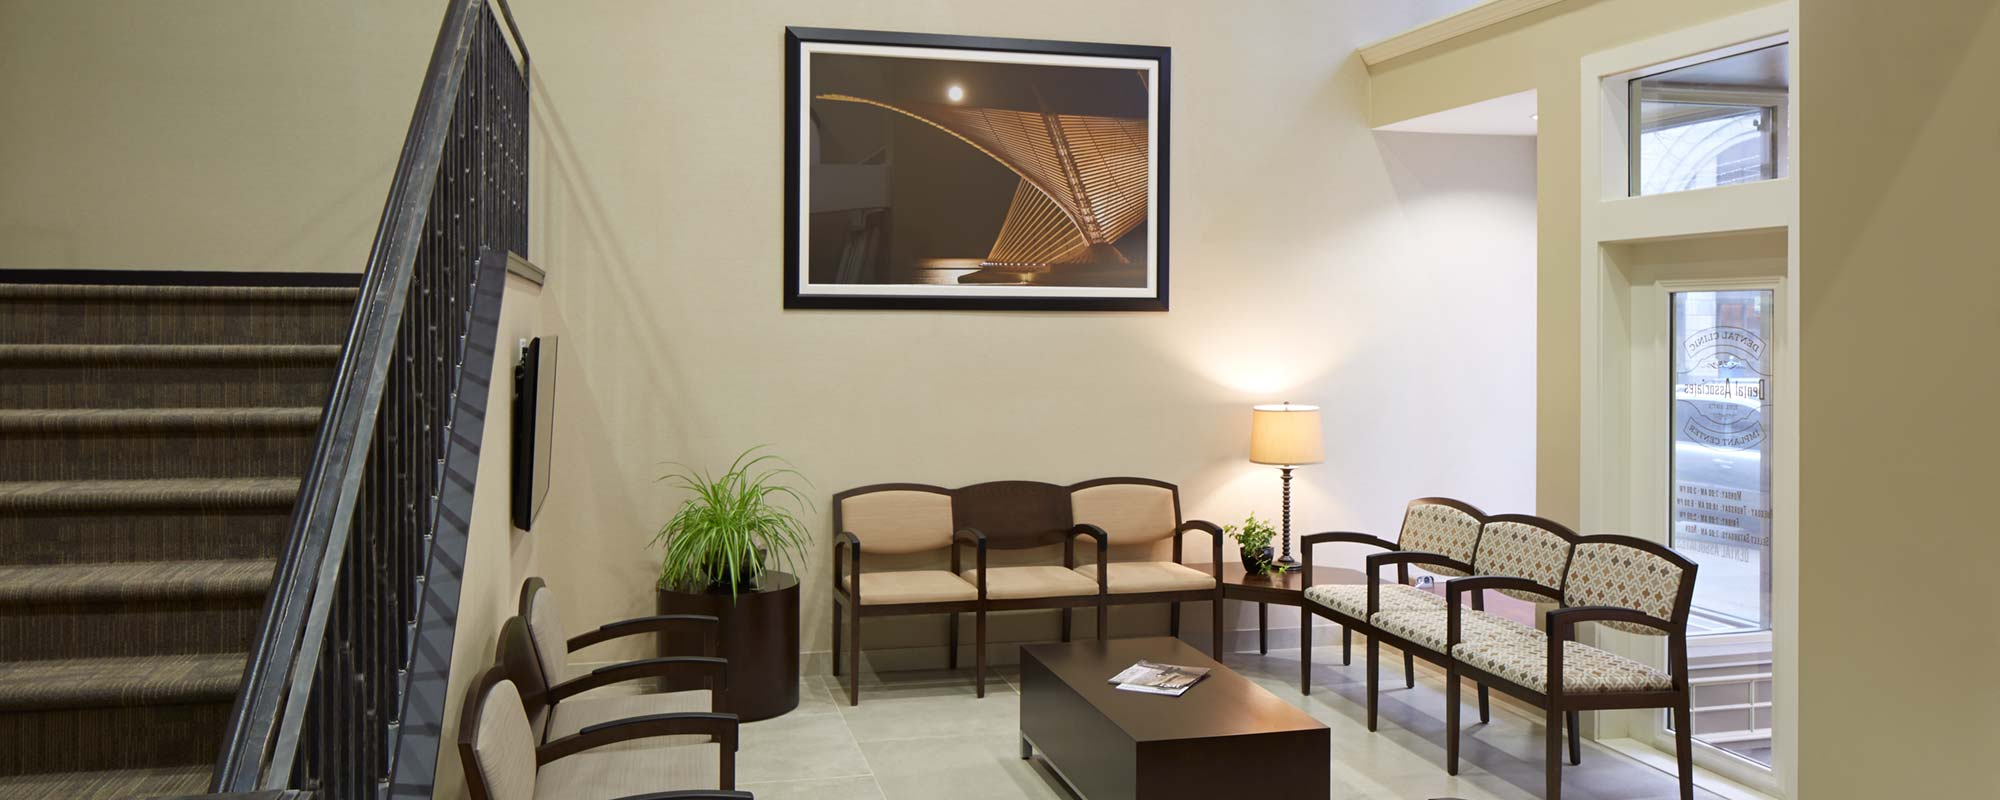 Dental Associates Downtown Milwaukee is located in the heart of the city and offers a wide range of dental services.